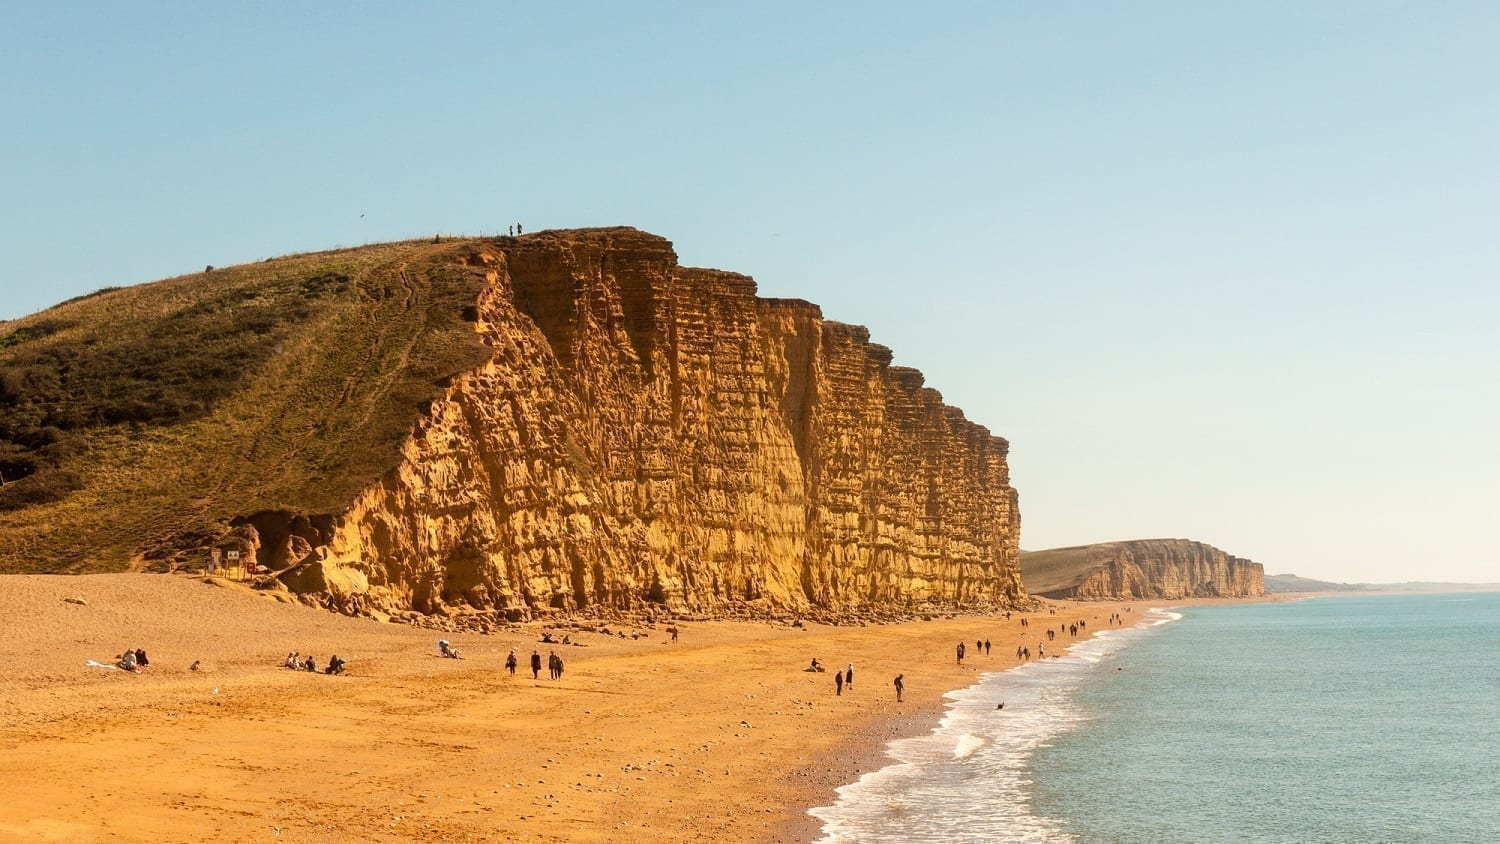 Charmouth, England cliffs: ID 130546288 © Callum Redgrave Close | Dreamstime.com